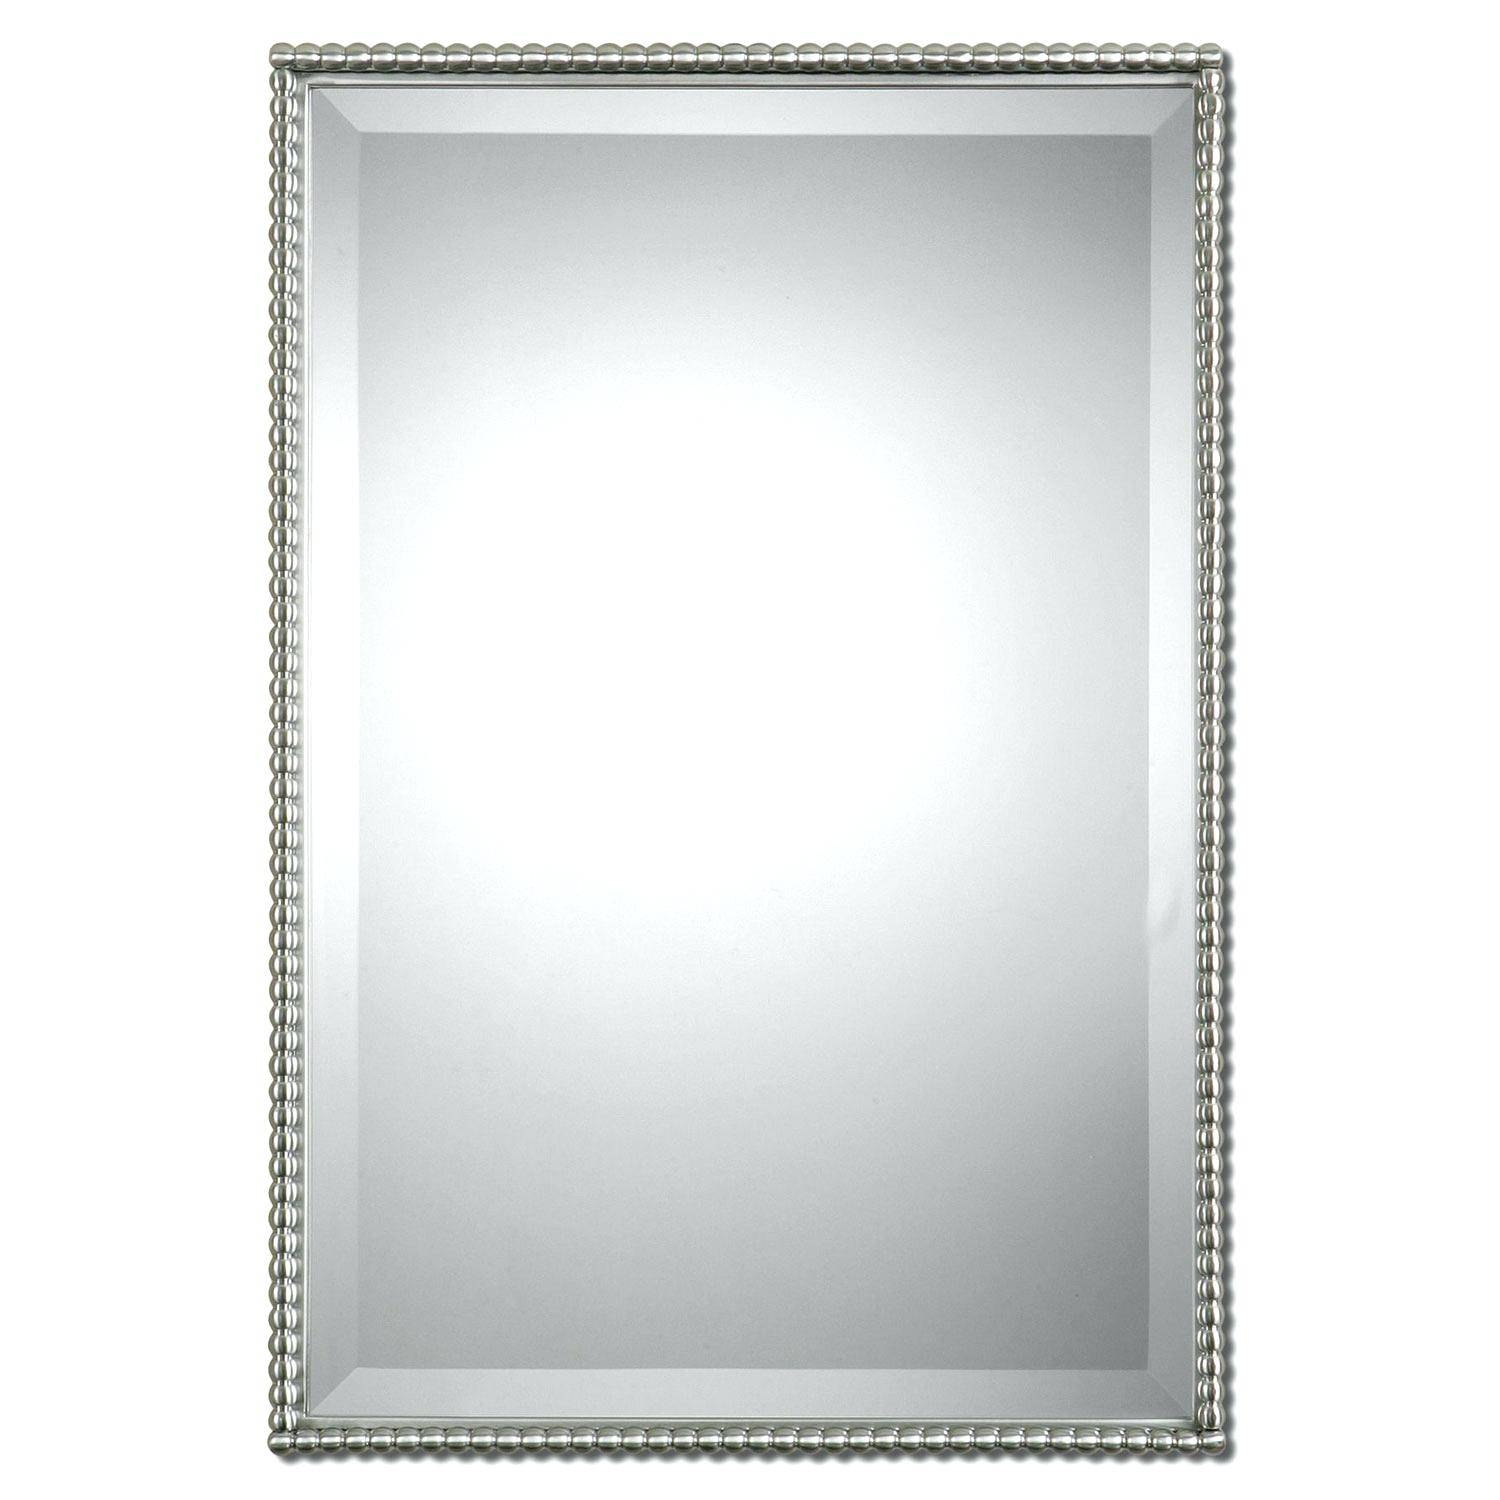 Bathroom Cabinets Round Wall Mirror Black Vintage With Mirrors Image 3